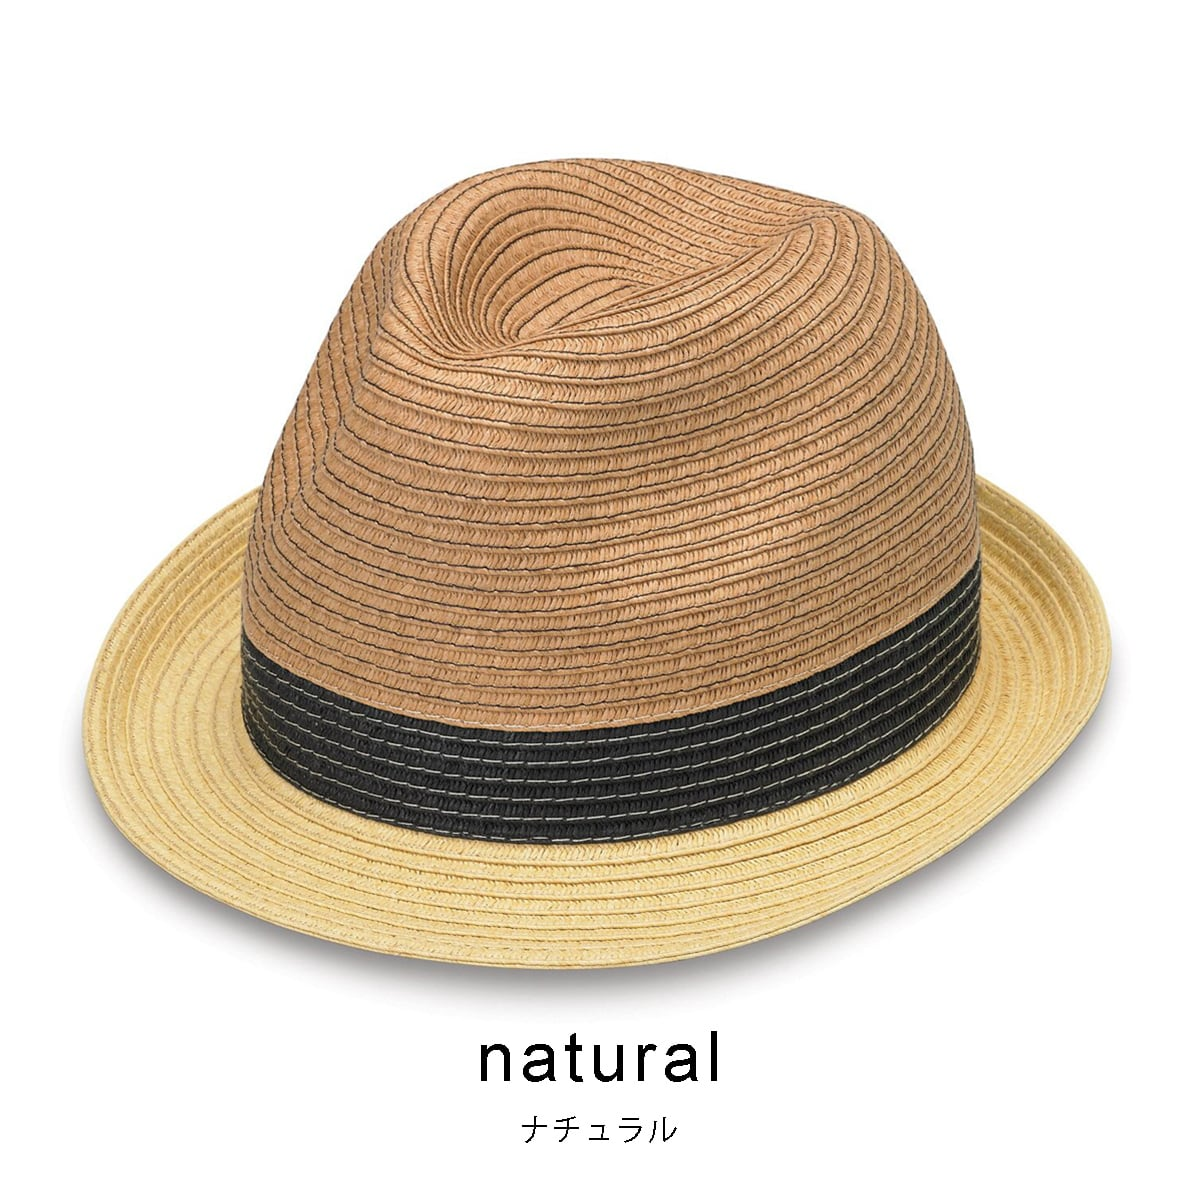 ST. TROPEZ TRILBY ~サントロペ・トリルビー~